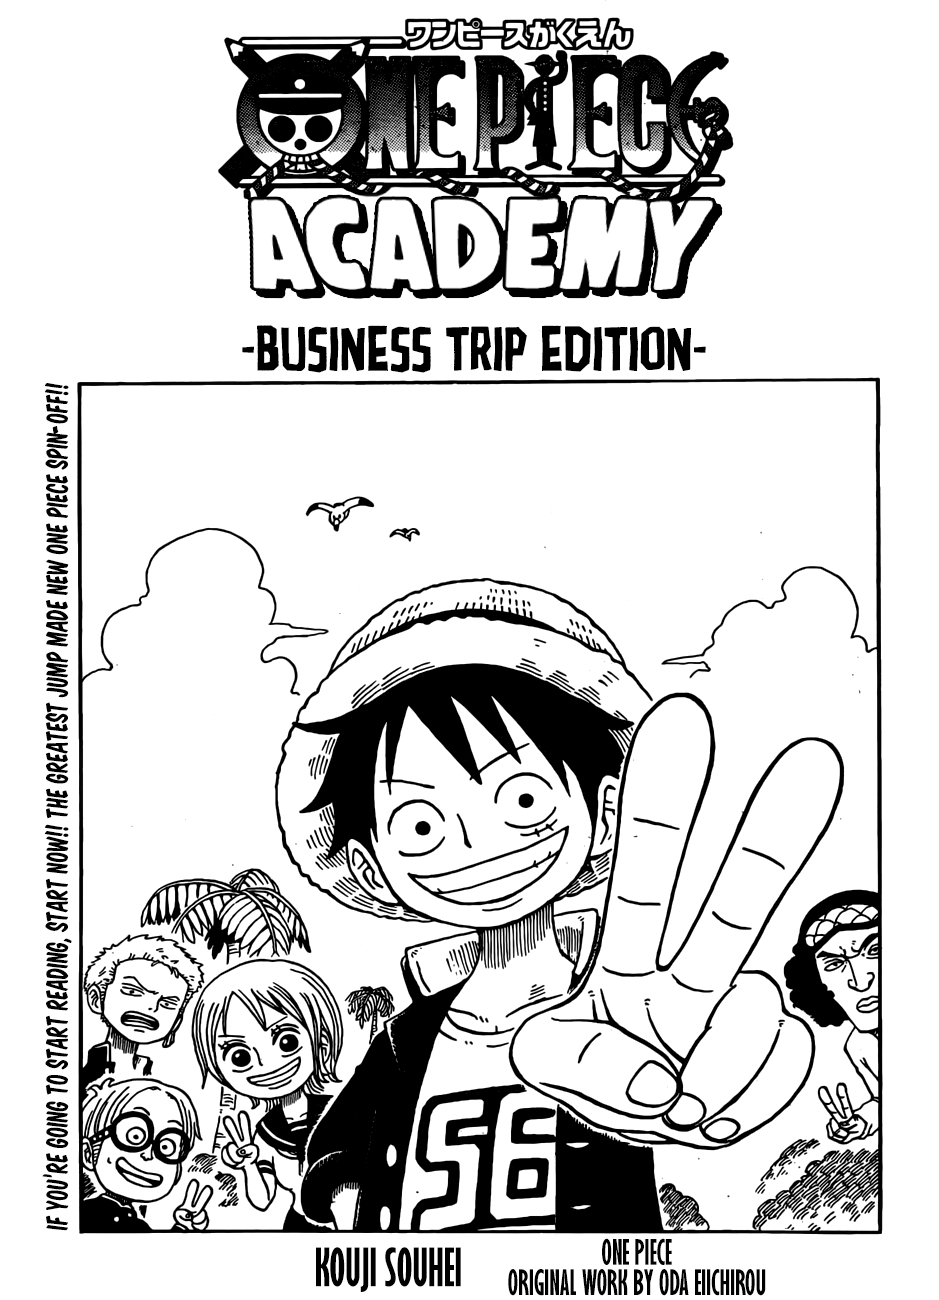 One Piece Academy: Business Trip Edition 956.99